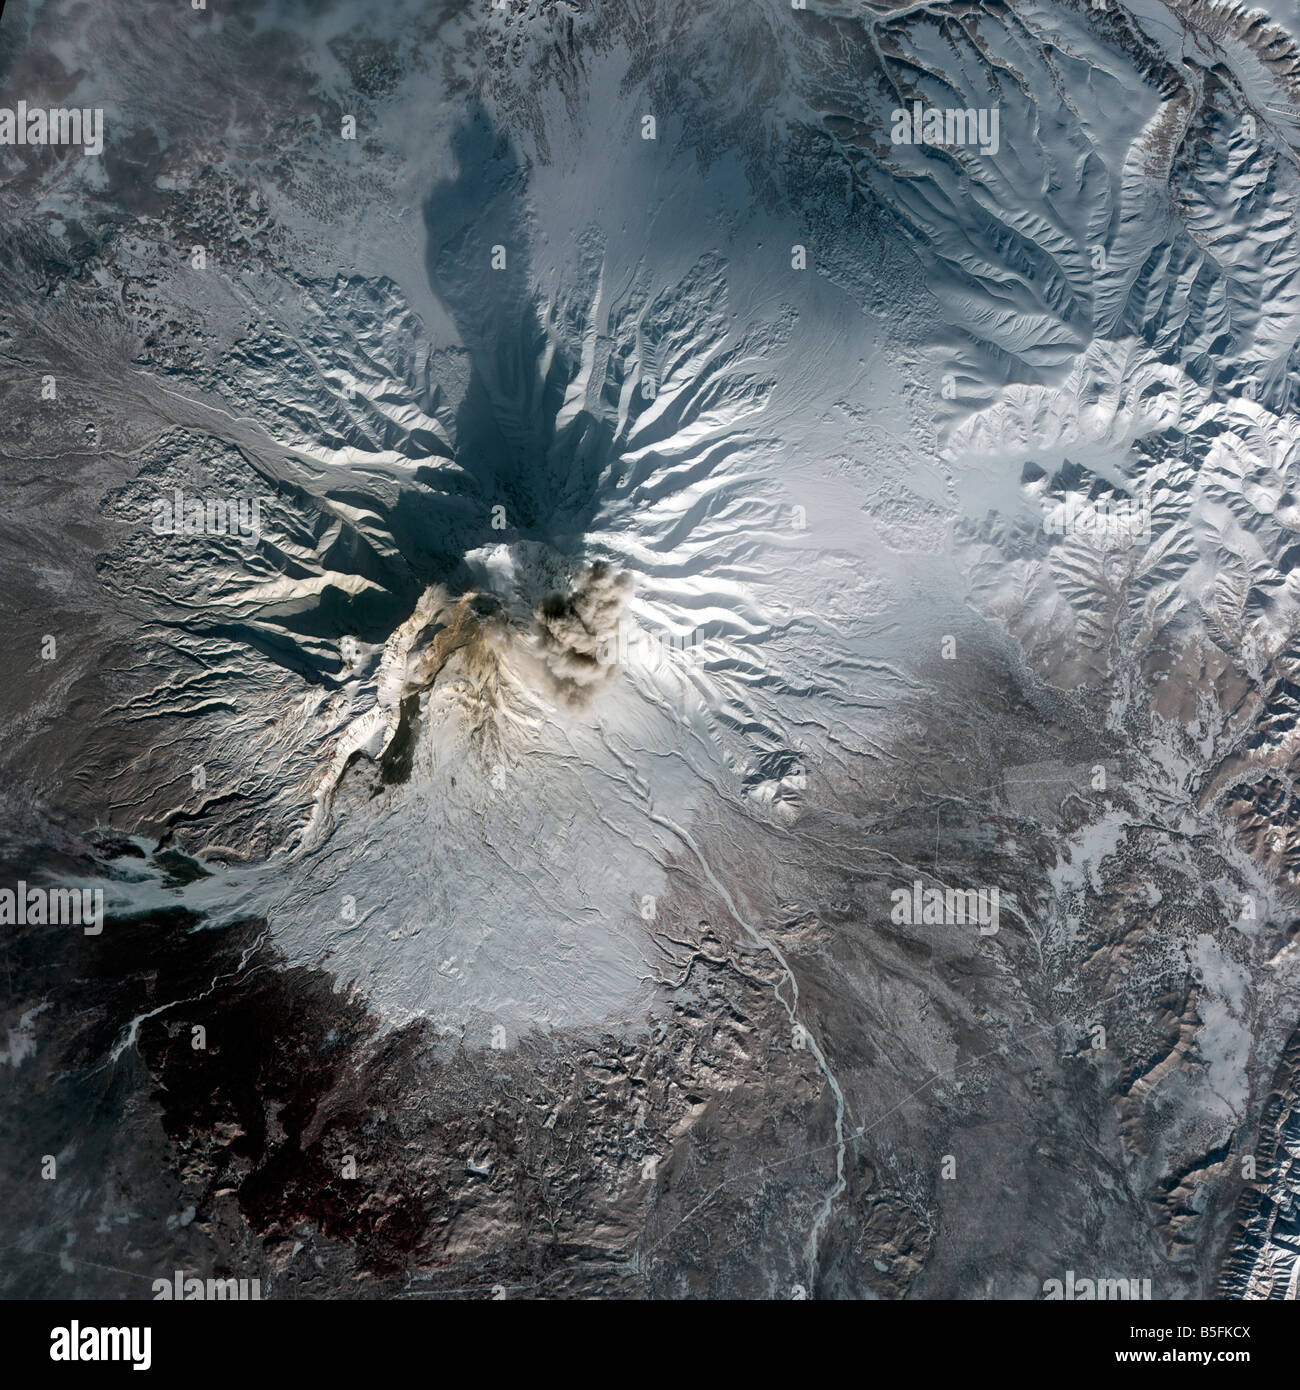 Russia's Shiveluch Volcano Wakes Up in Kamchatka :: Russia-InfoCentre